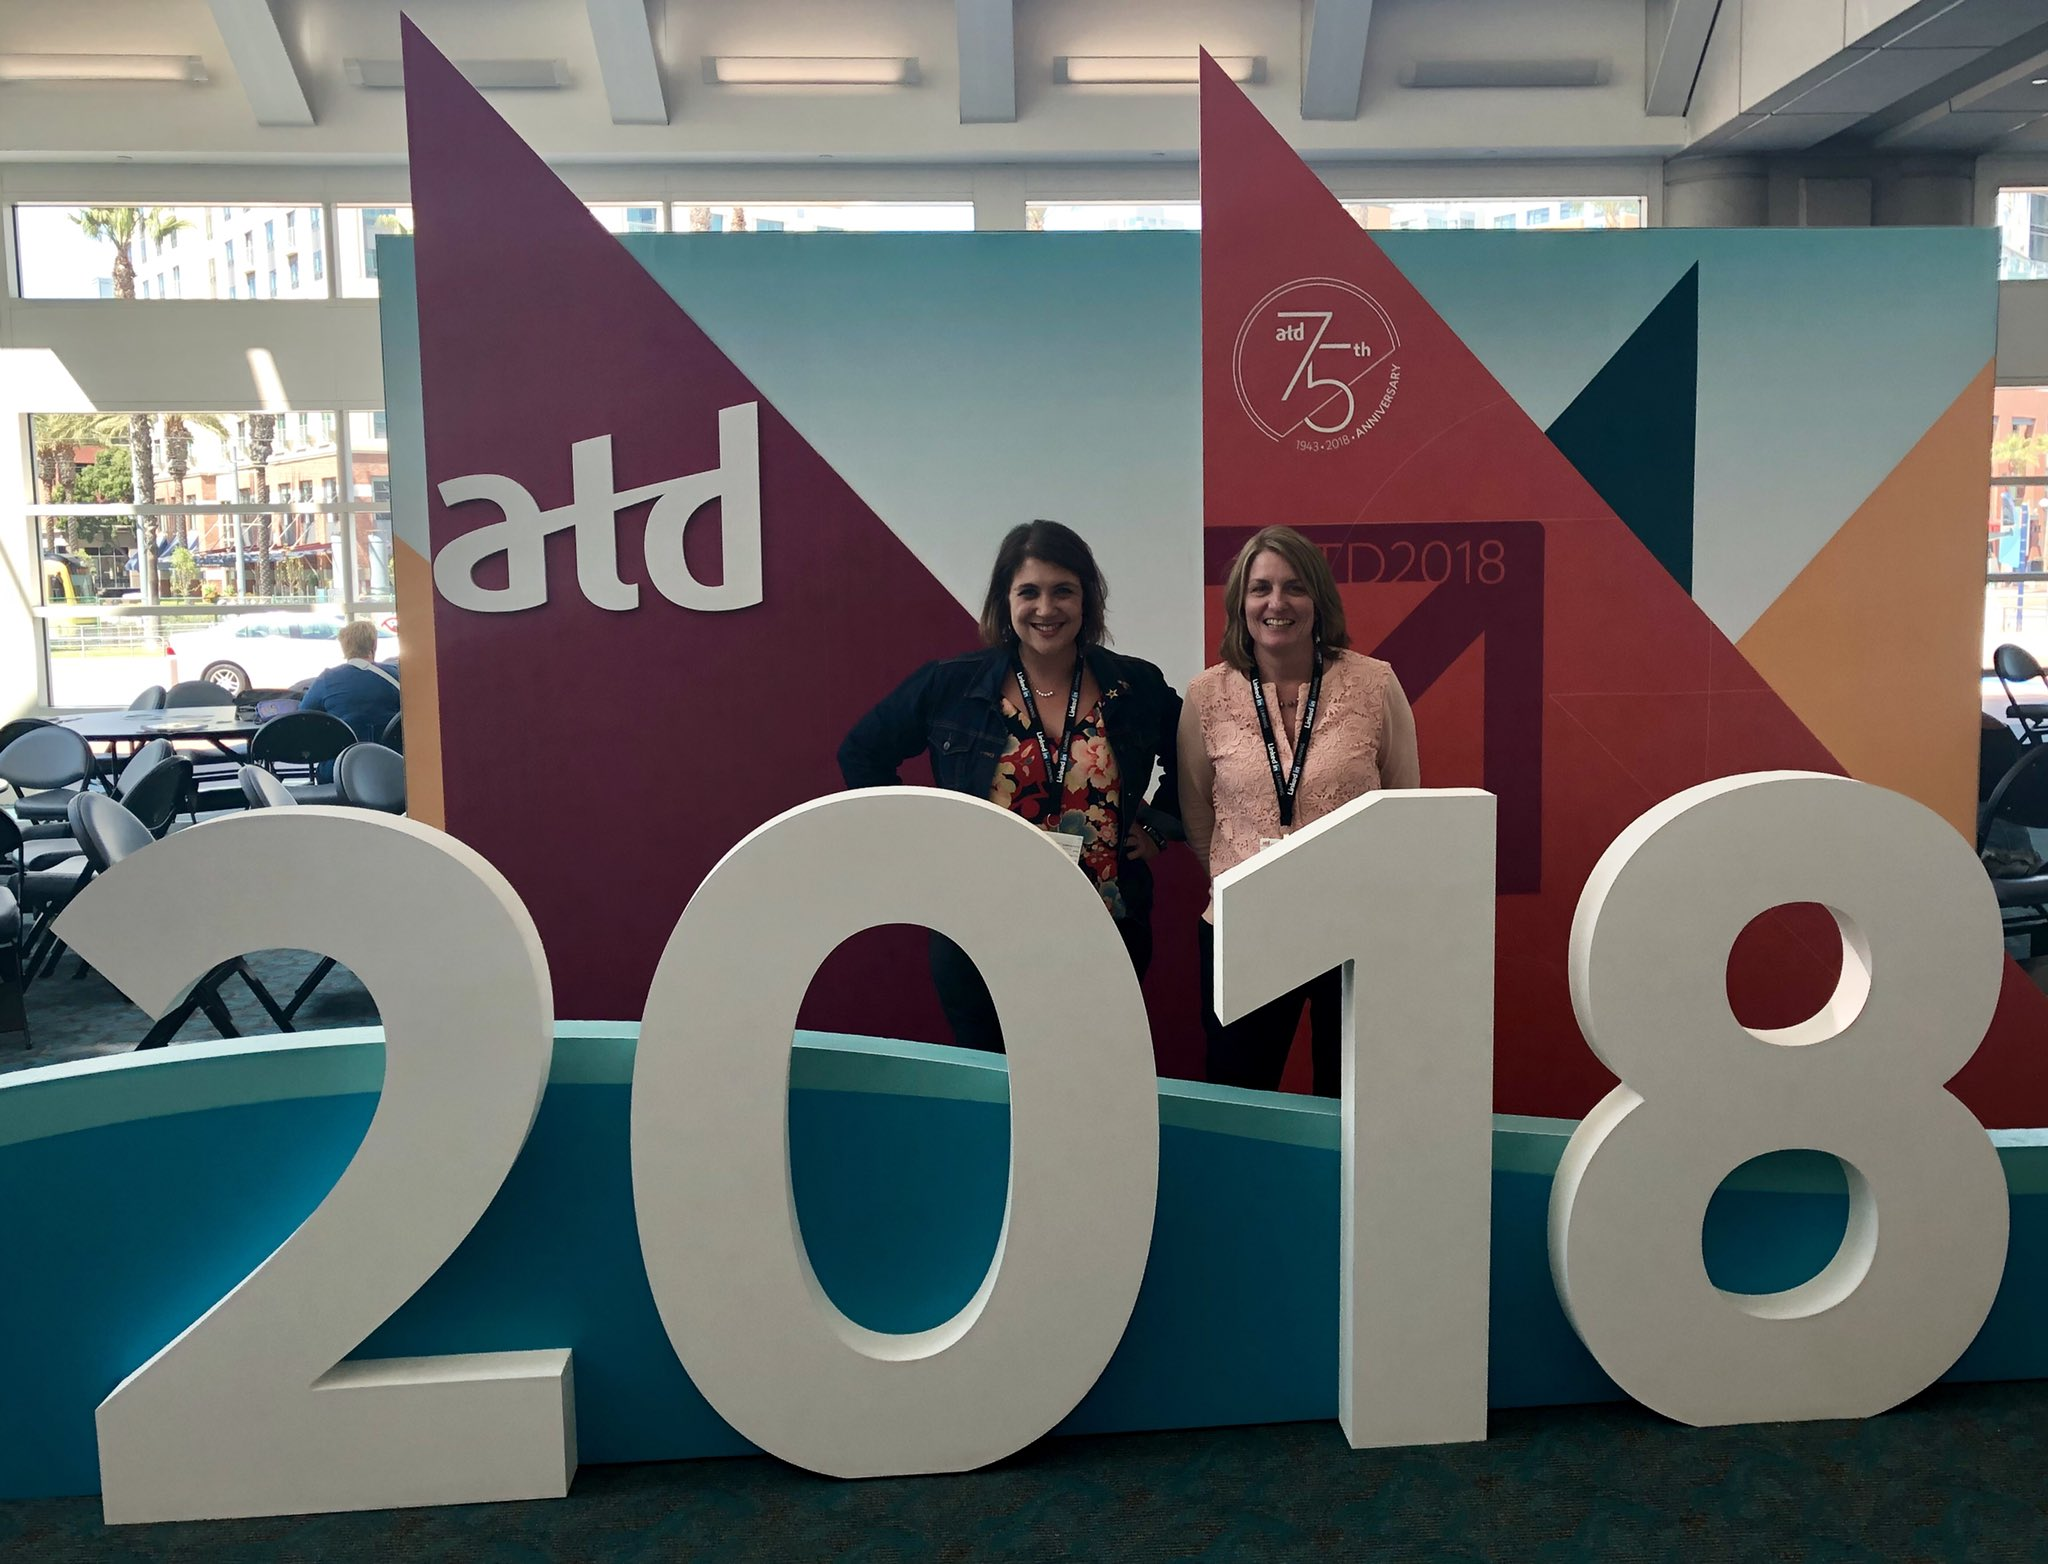 Thank you so much to @BOMIInt for the opportunity to attend #atd2018! I learned so much and am excited to bring back new and innovative ideas to our L&D team! https://t.co/KAtzAWBn1Y